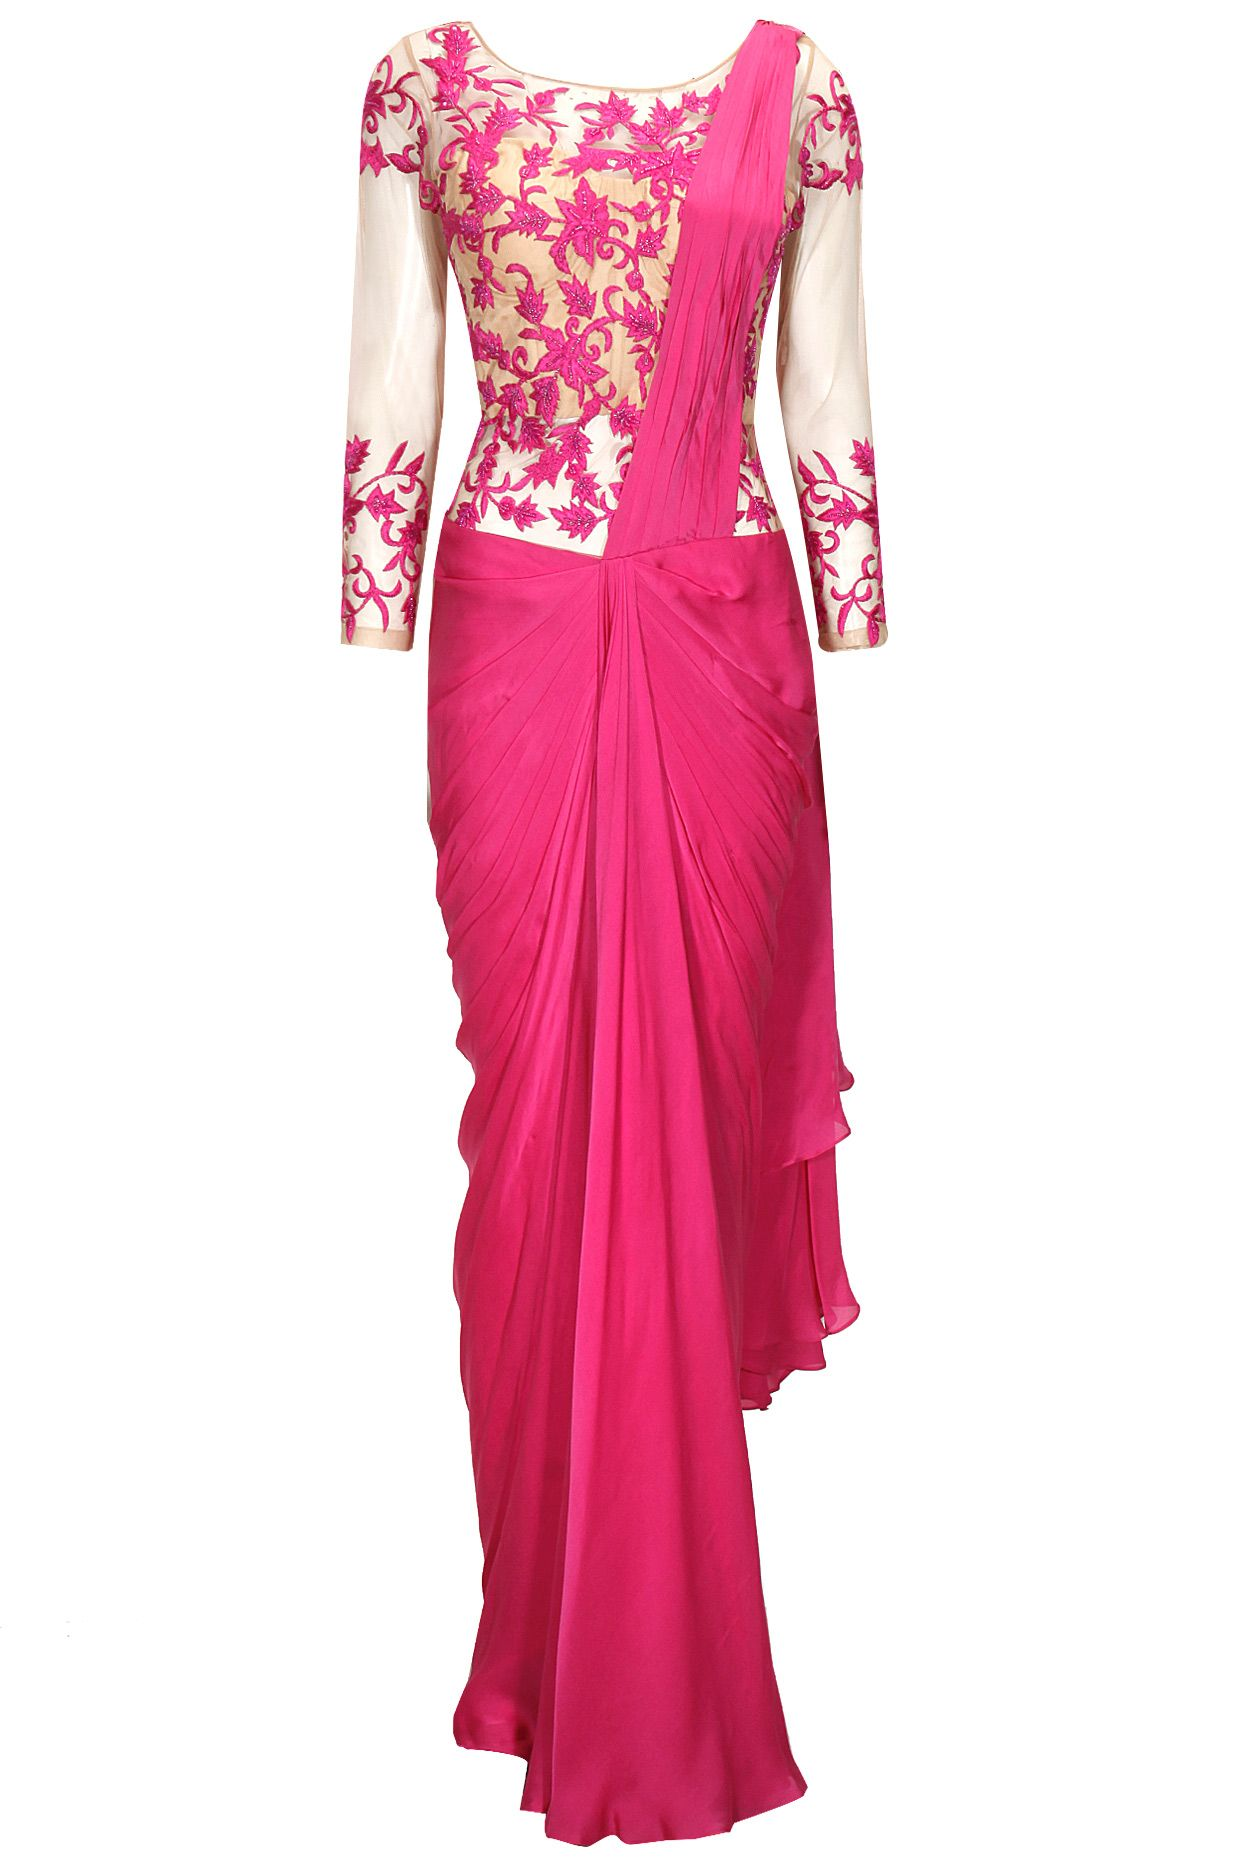 Pink floral embroidered pre- stitched sari gown available only at ...